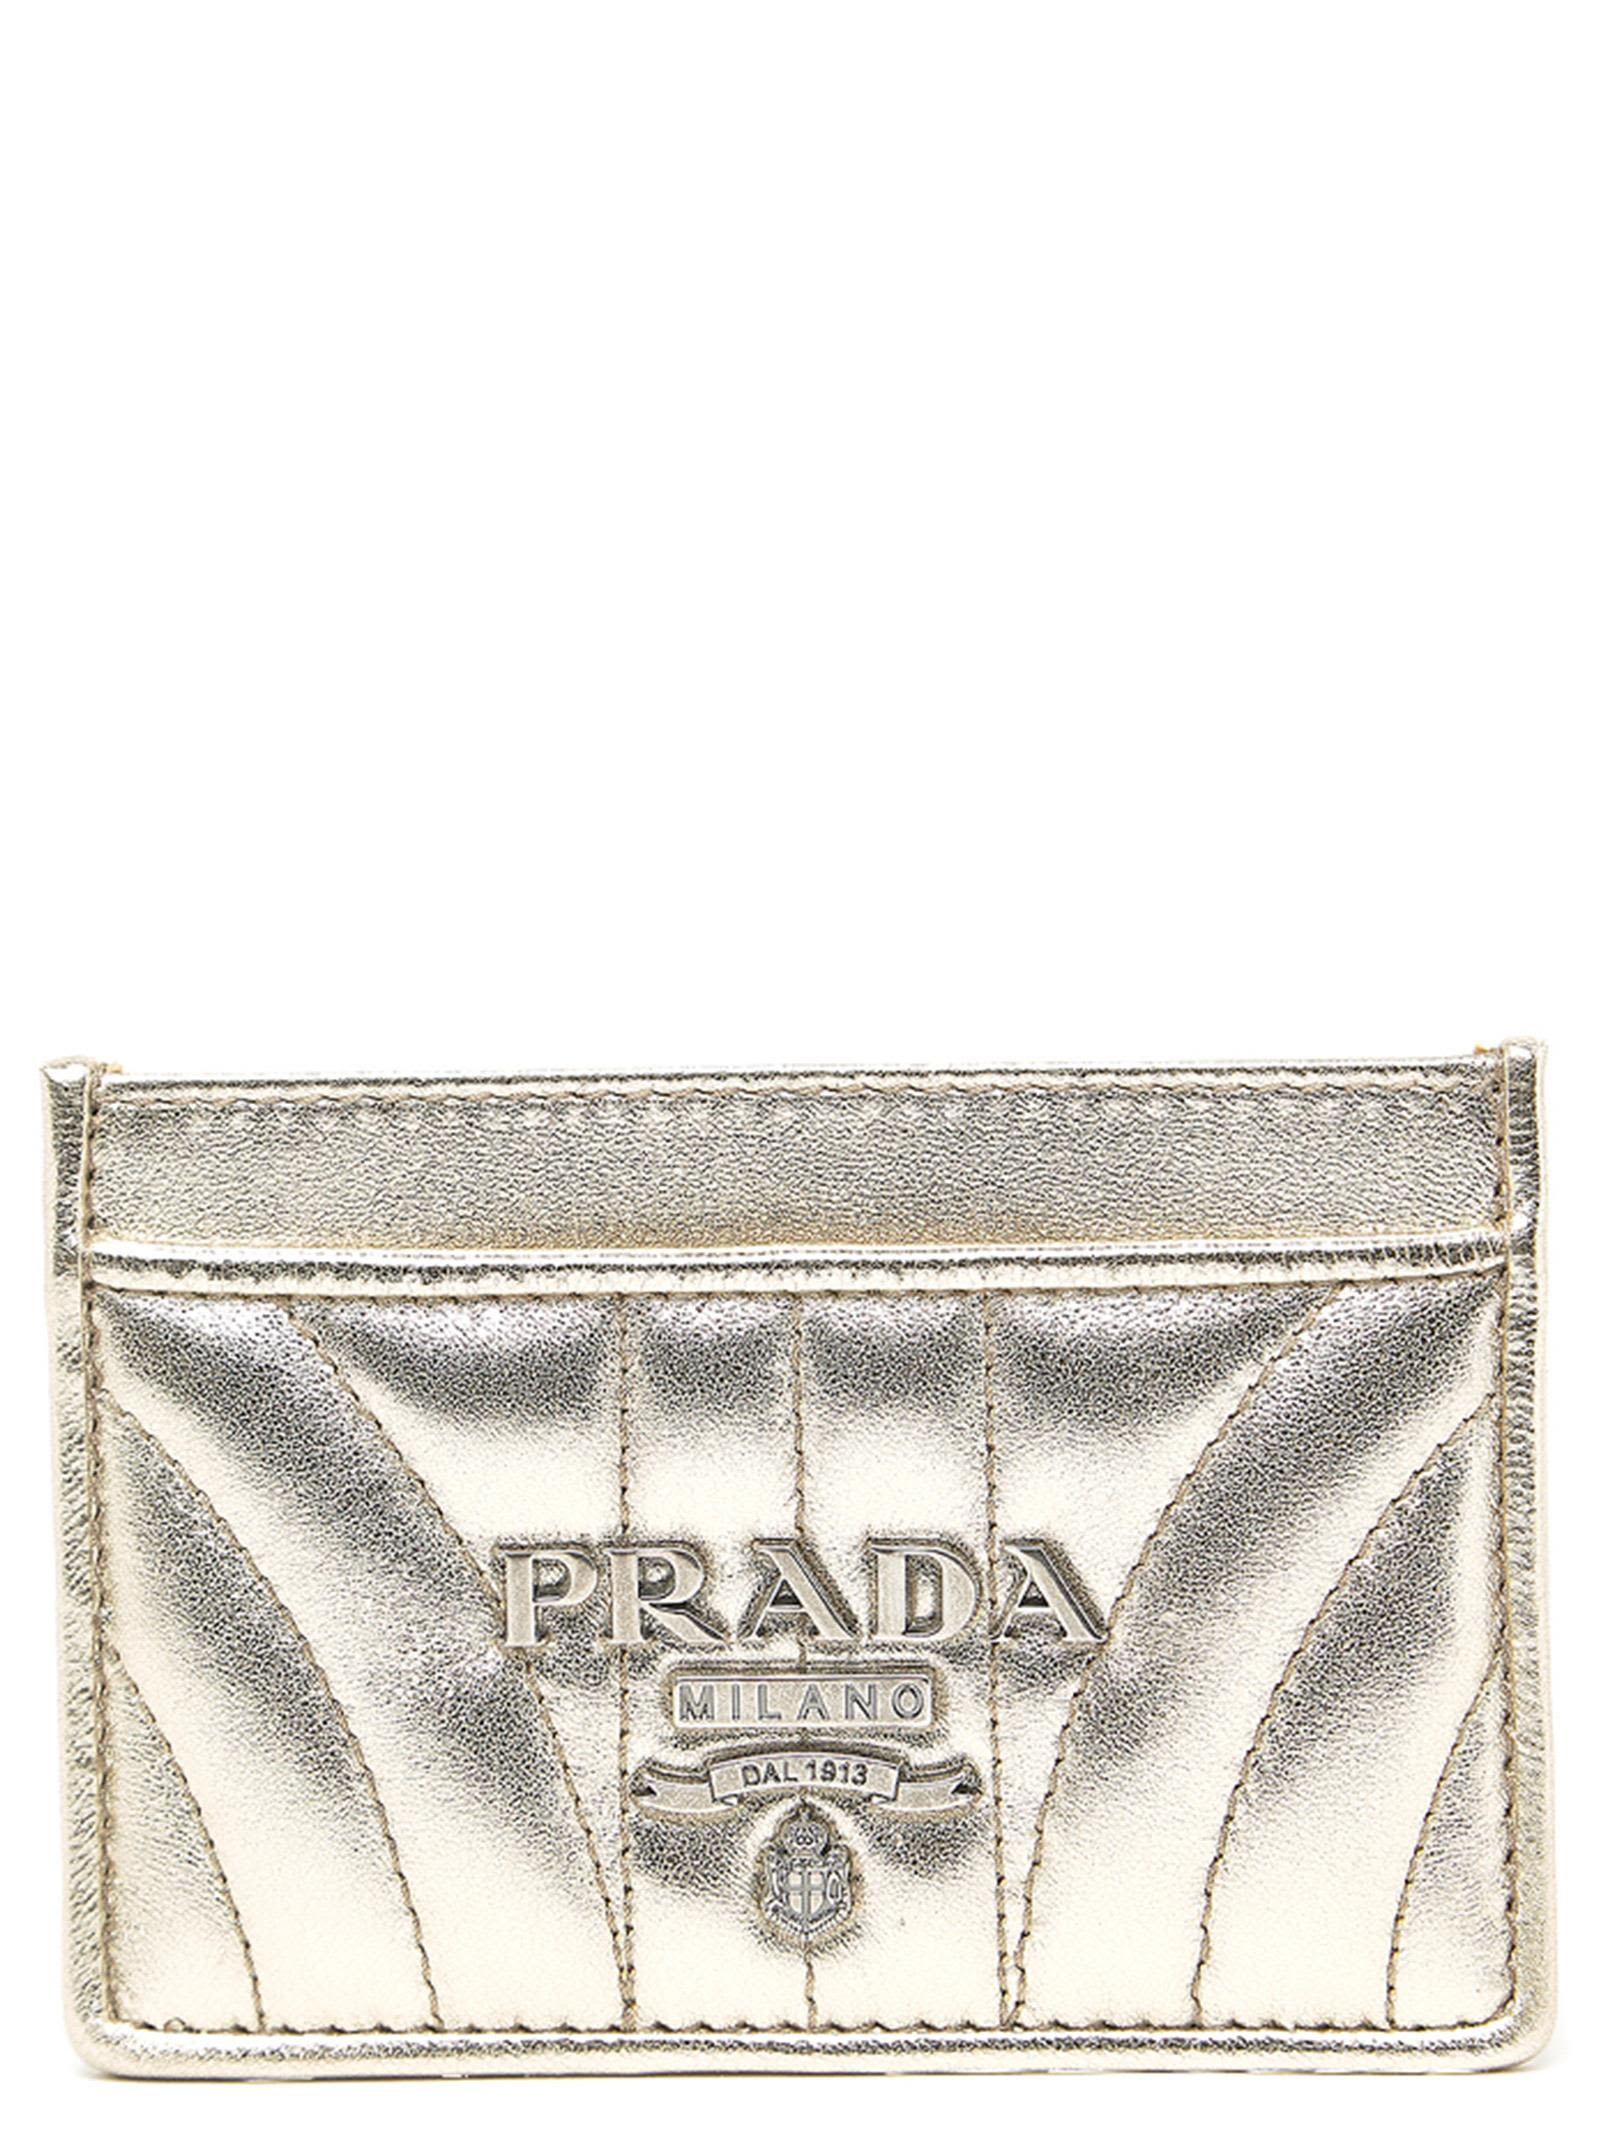 Cardholder in Metallic